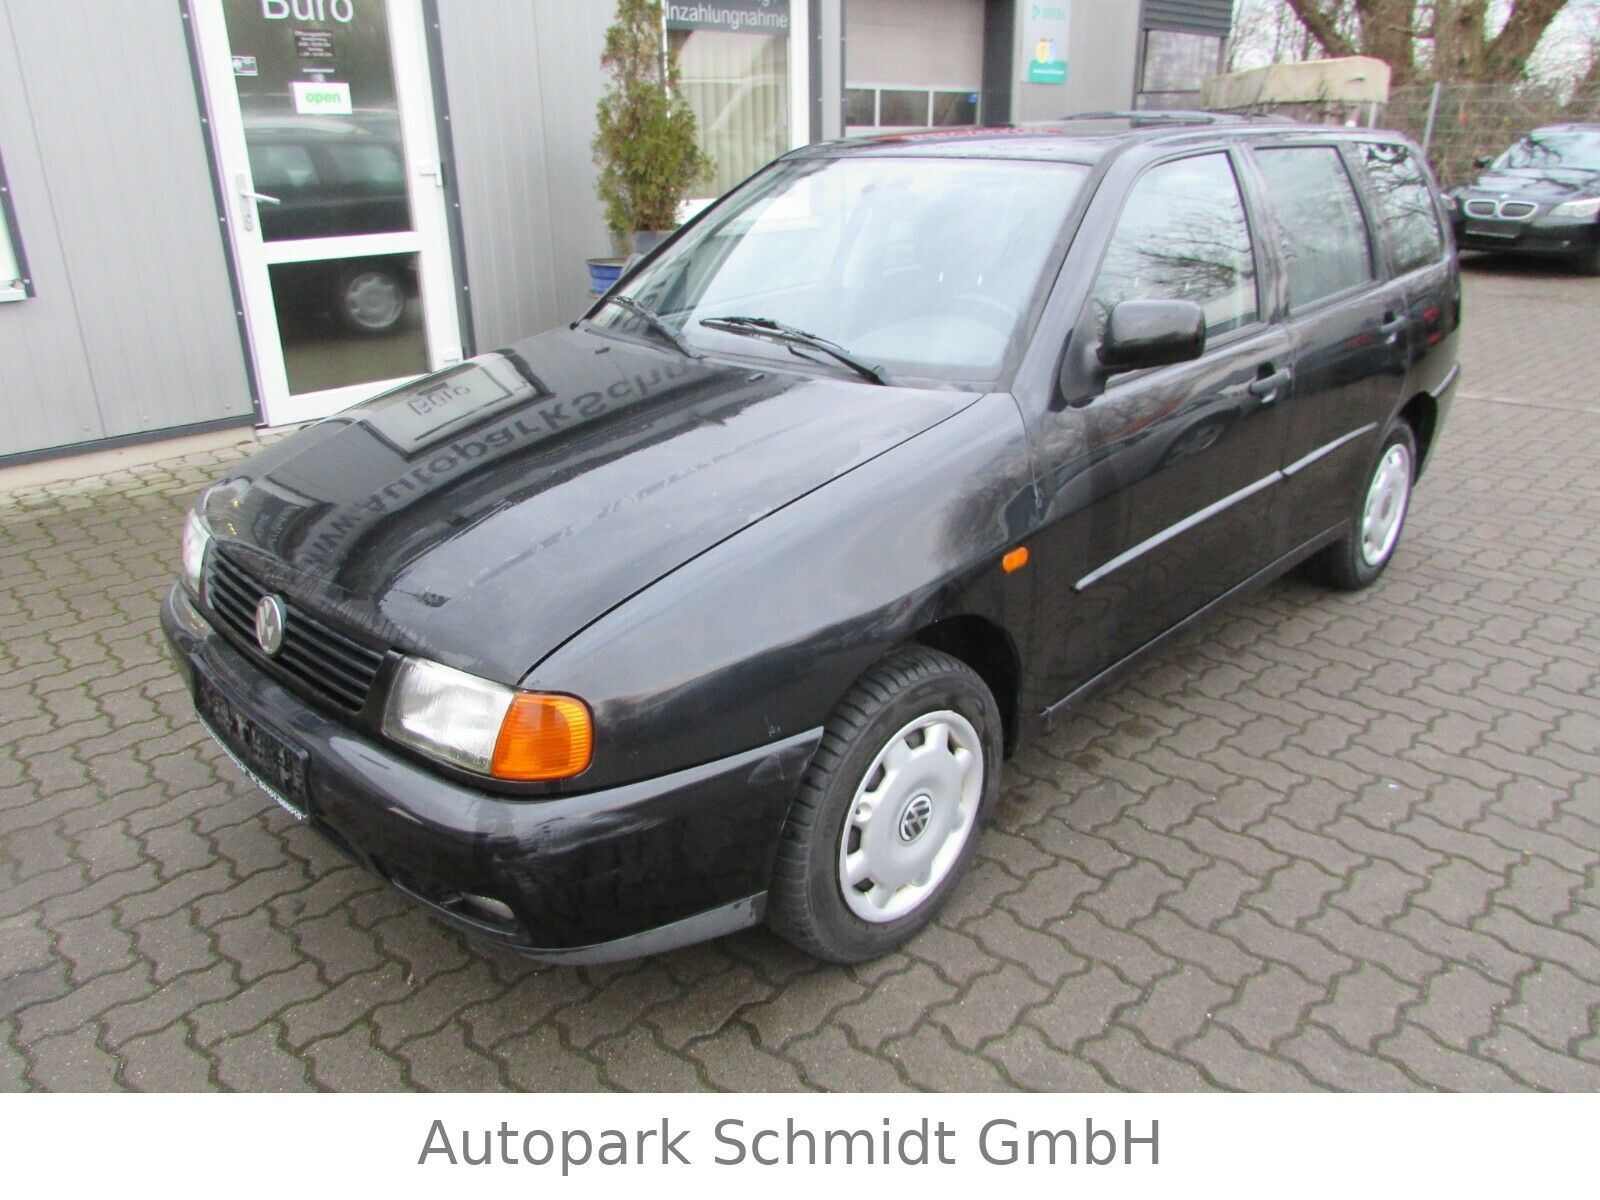 VW Polo 1.4 Basis °Schiebedach°5 Gang°EFH°Servo°ZV°